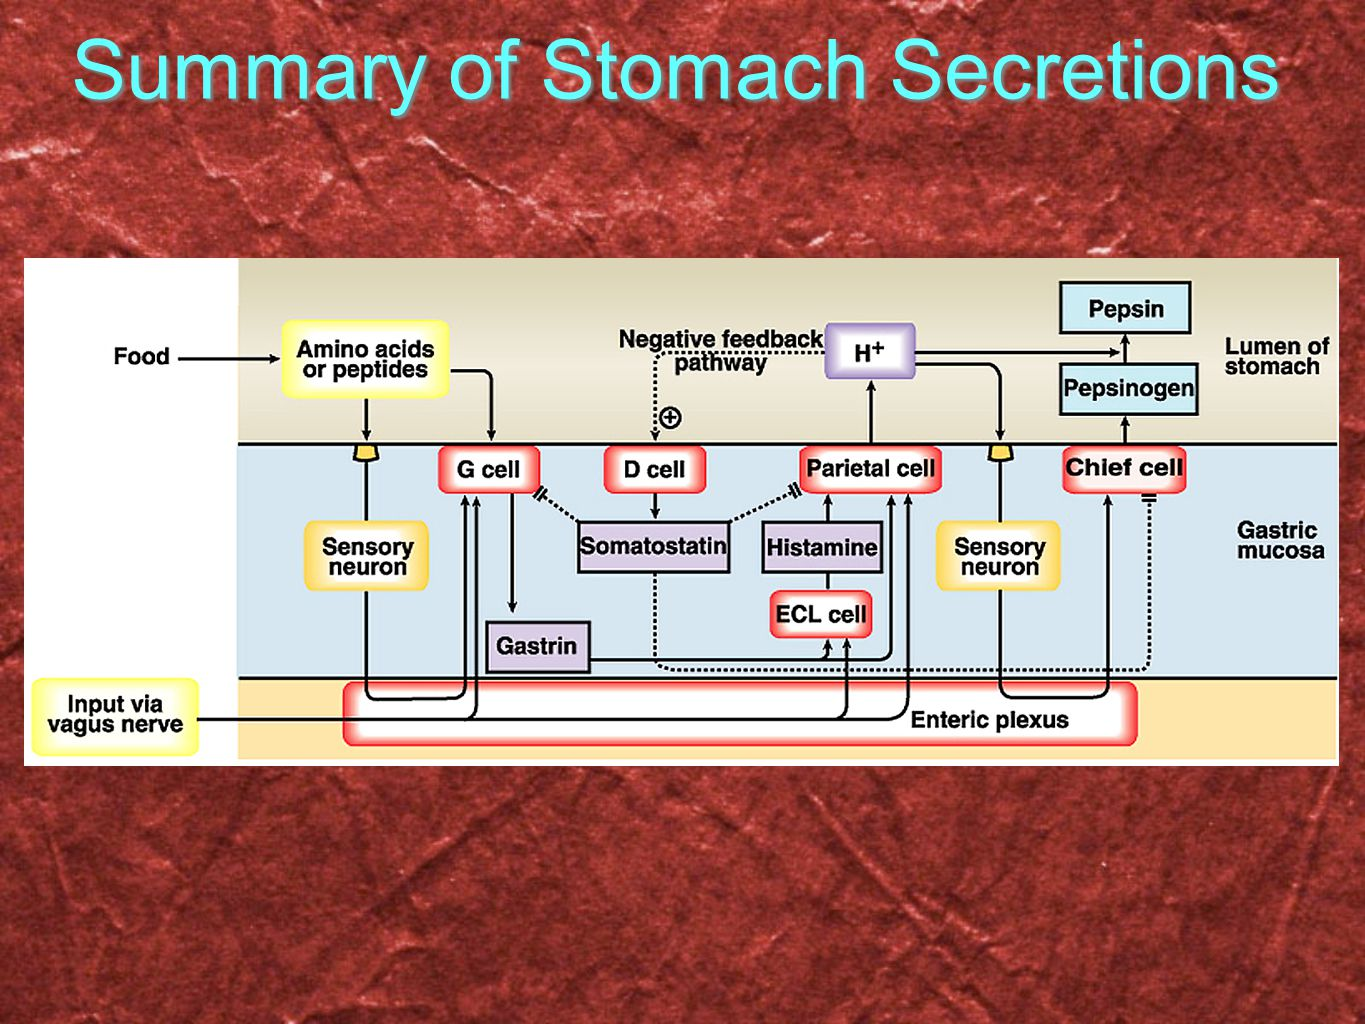 Summary of Stomach Secretions